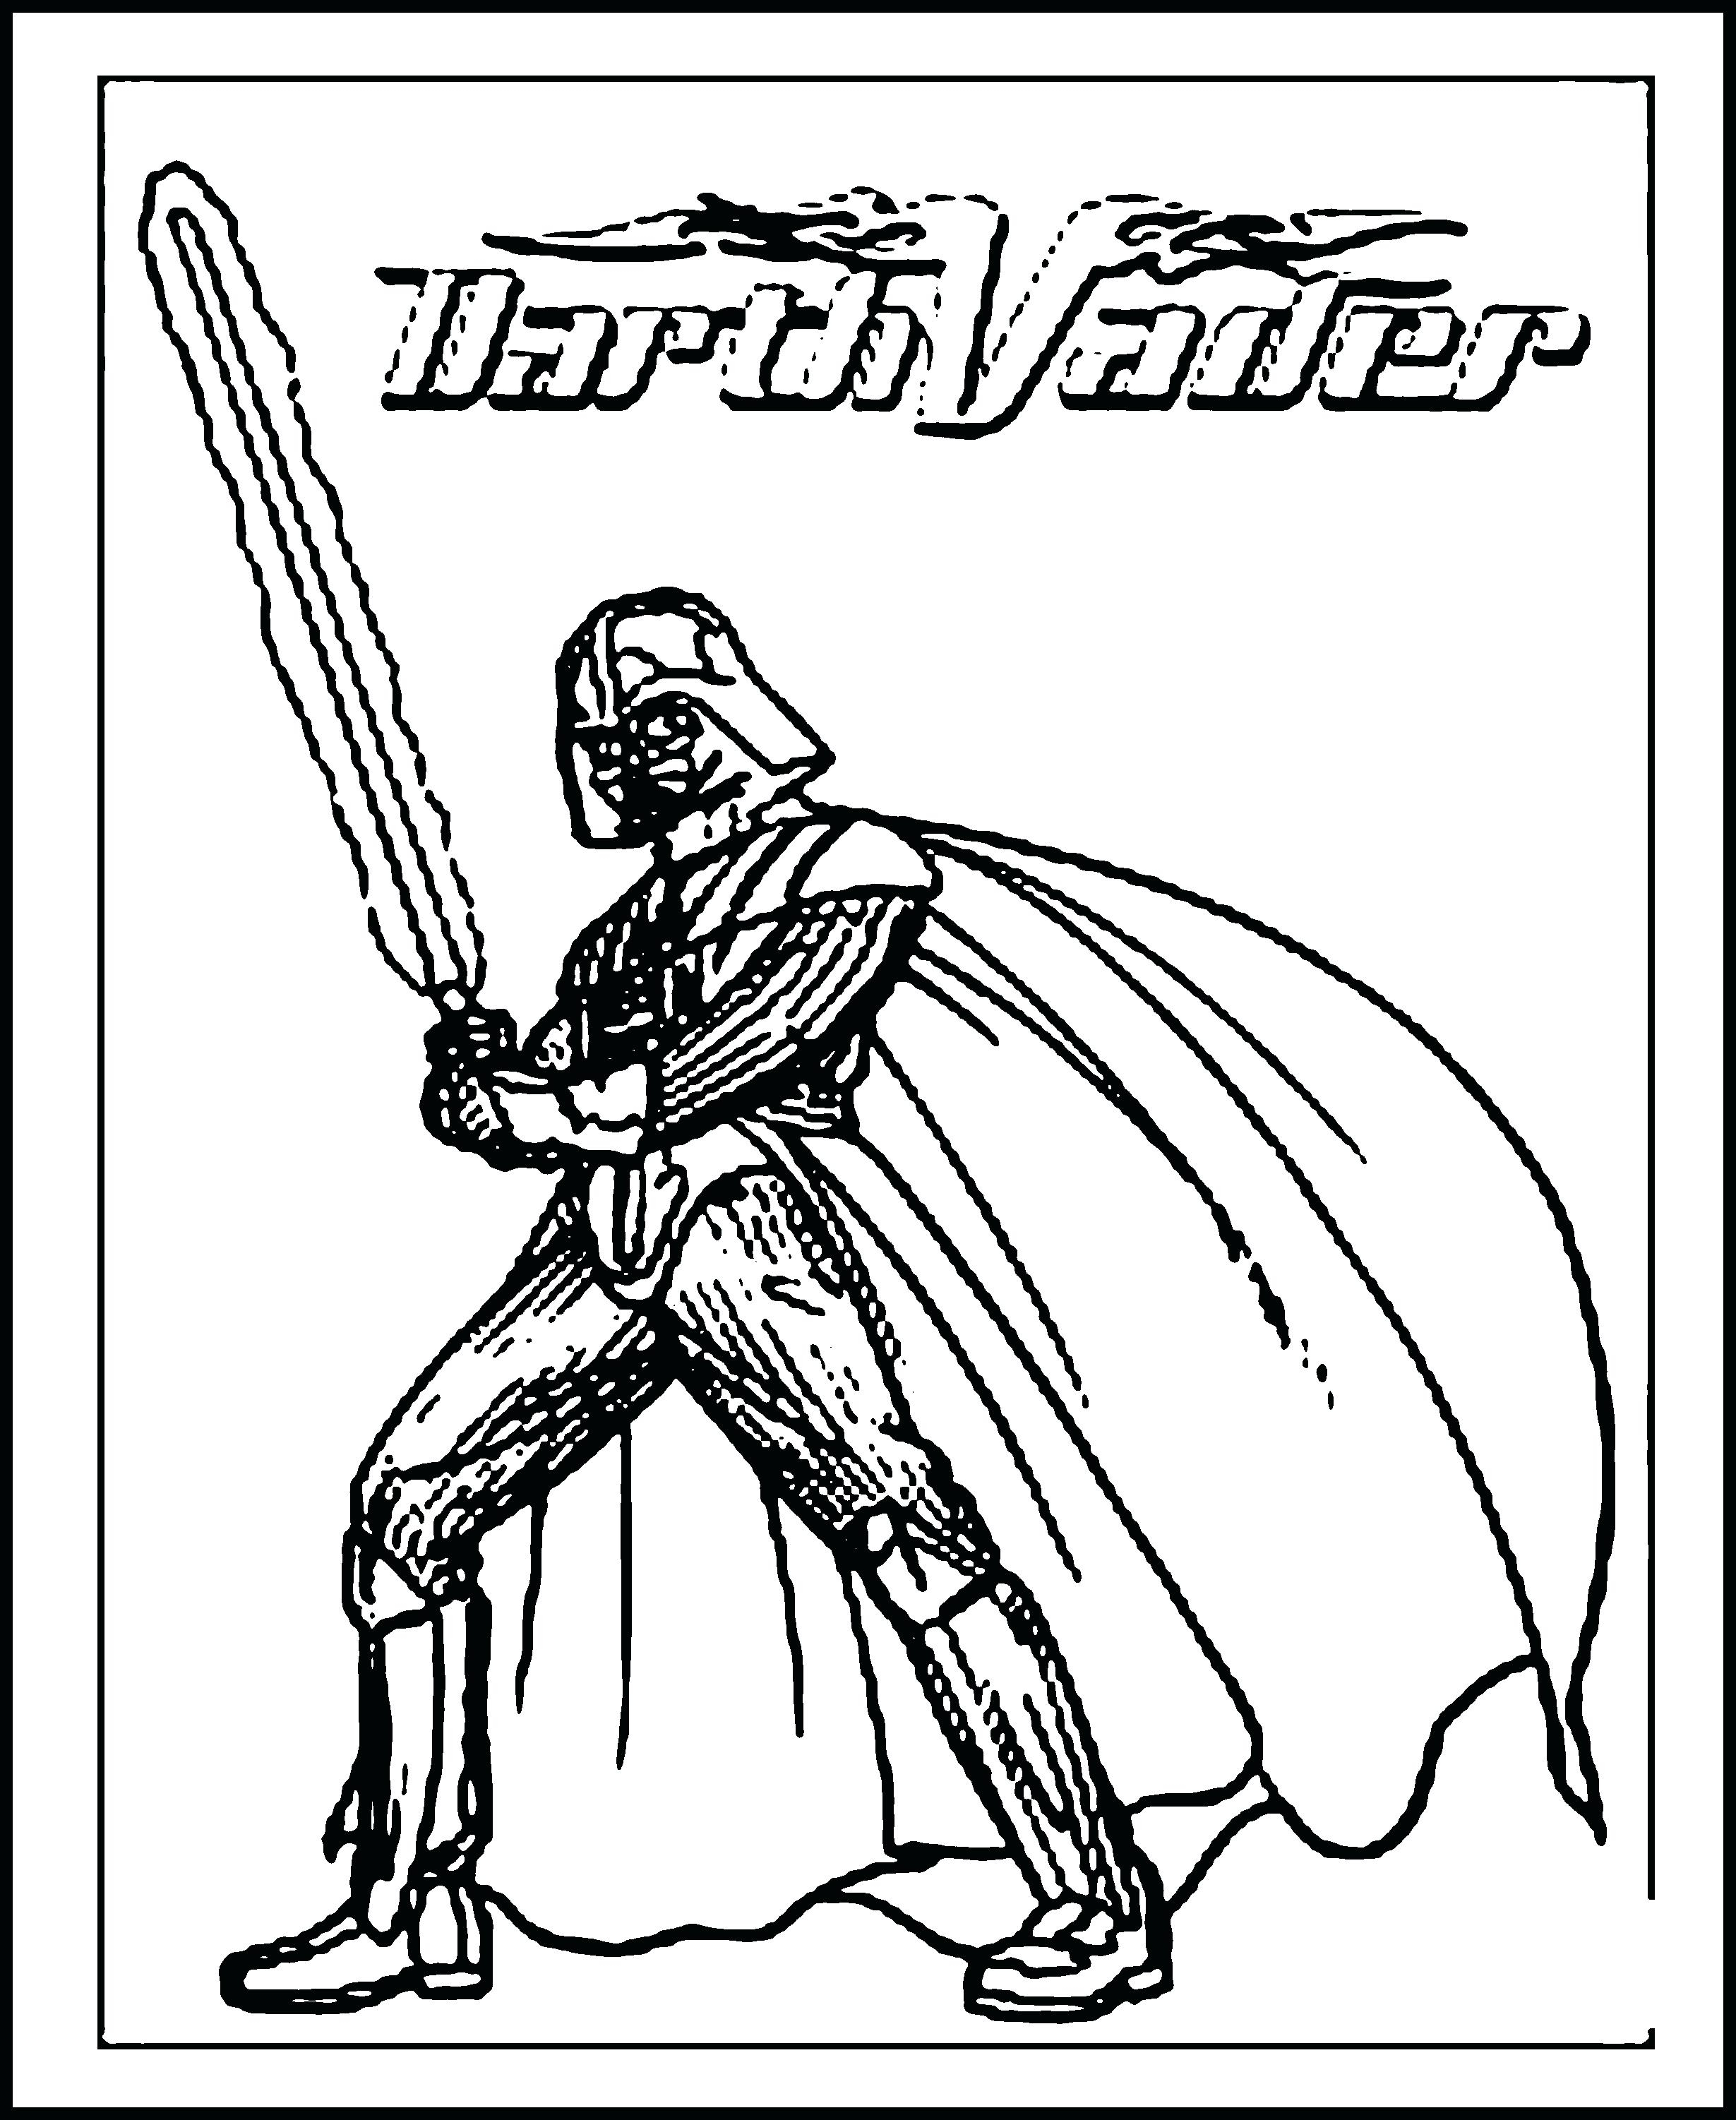 star wars coloring pages free Download-Star Wars Lego Coloring Page Awesome Star Wars Coloring Pages for Kids Star Wars Free Coloring 16-h